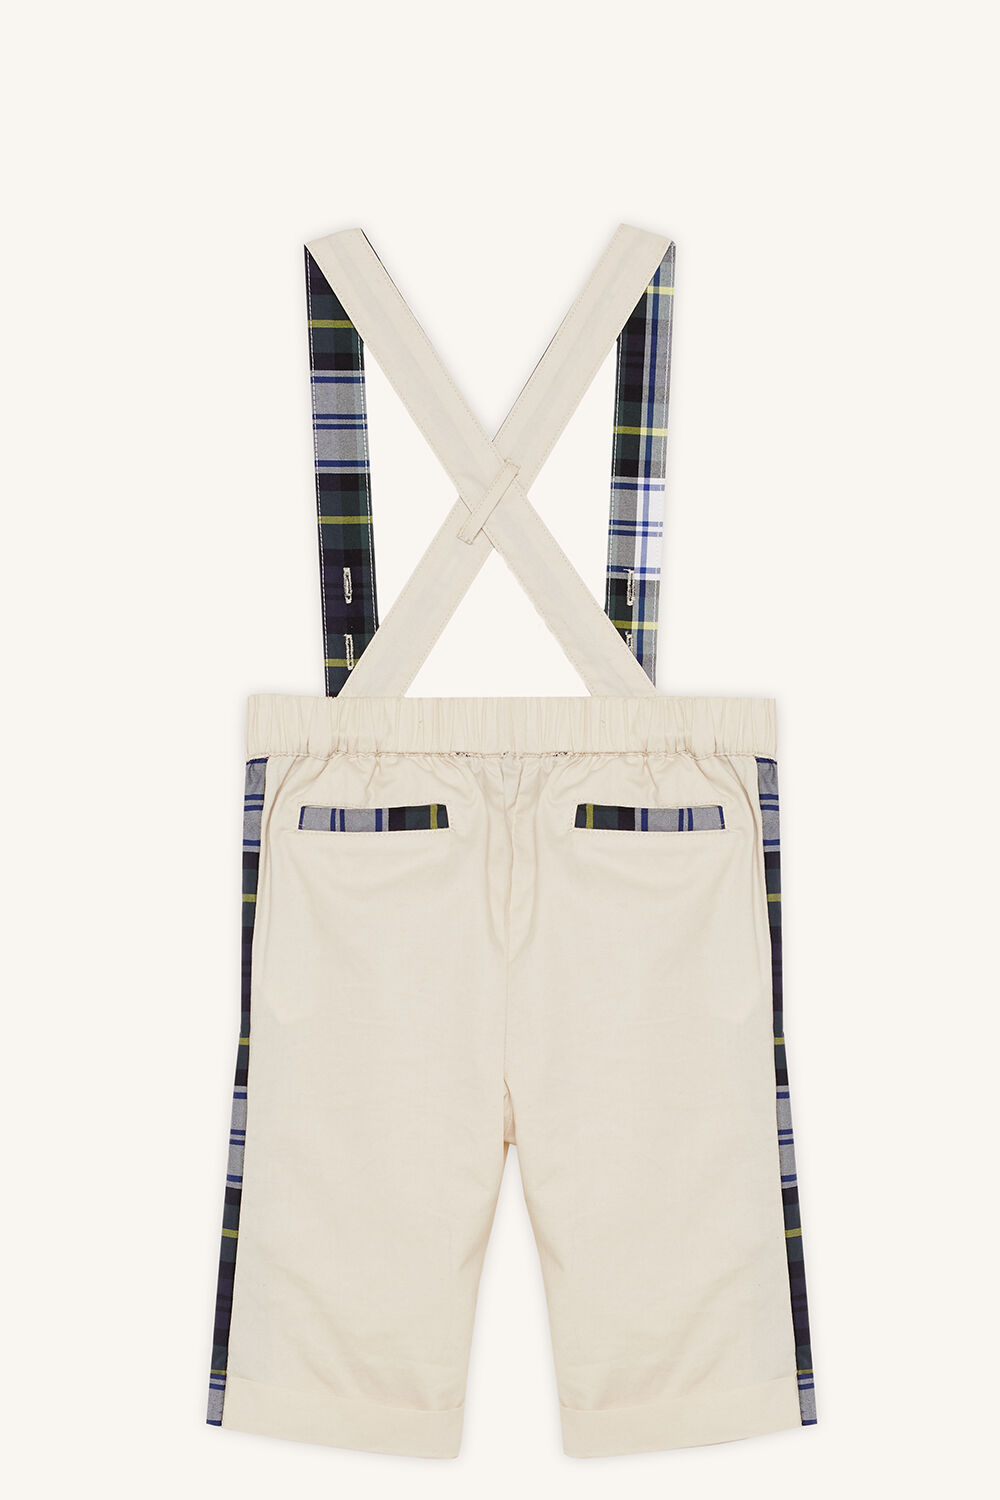 TARTAN CHINO OVERALL in colour BLEACHED SAND